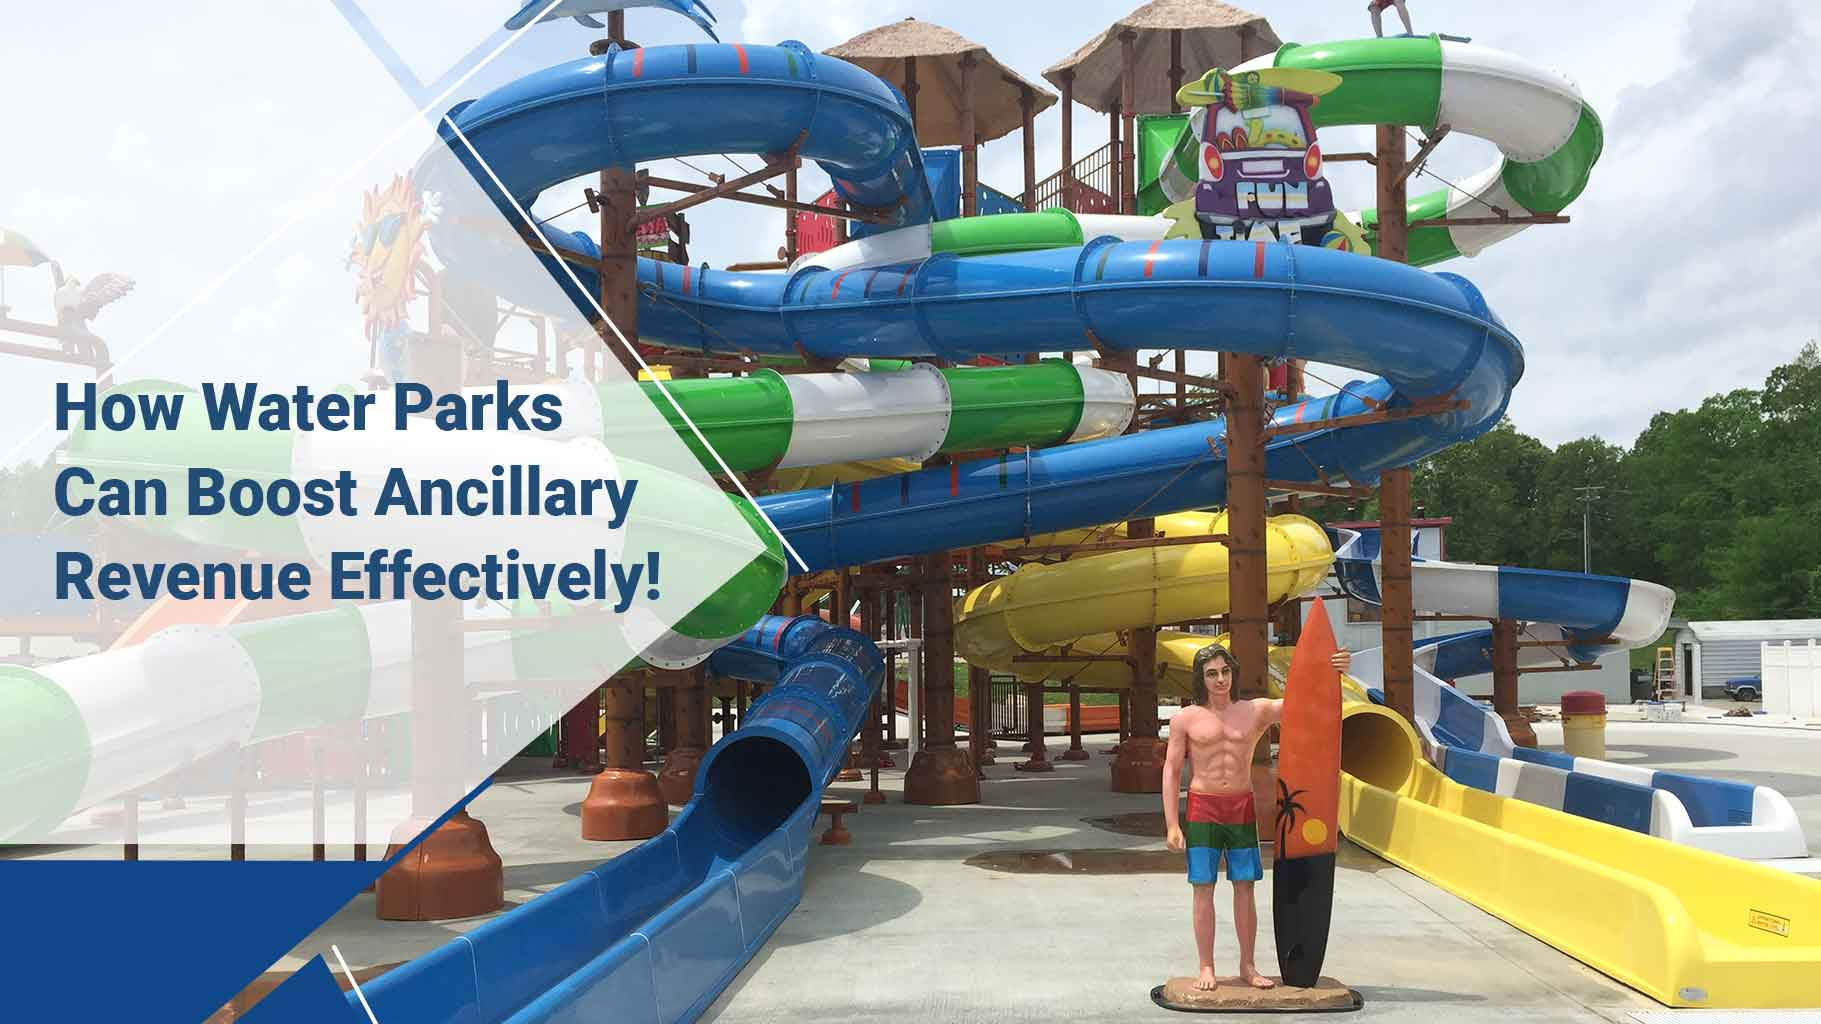 4 Ways Water Parks Can Boost Ancillary Revenue to Stay Successful